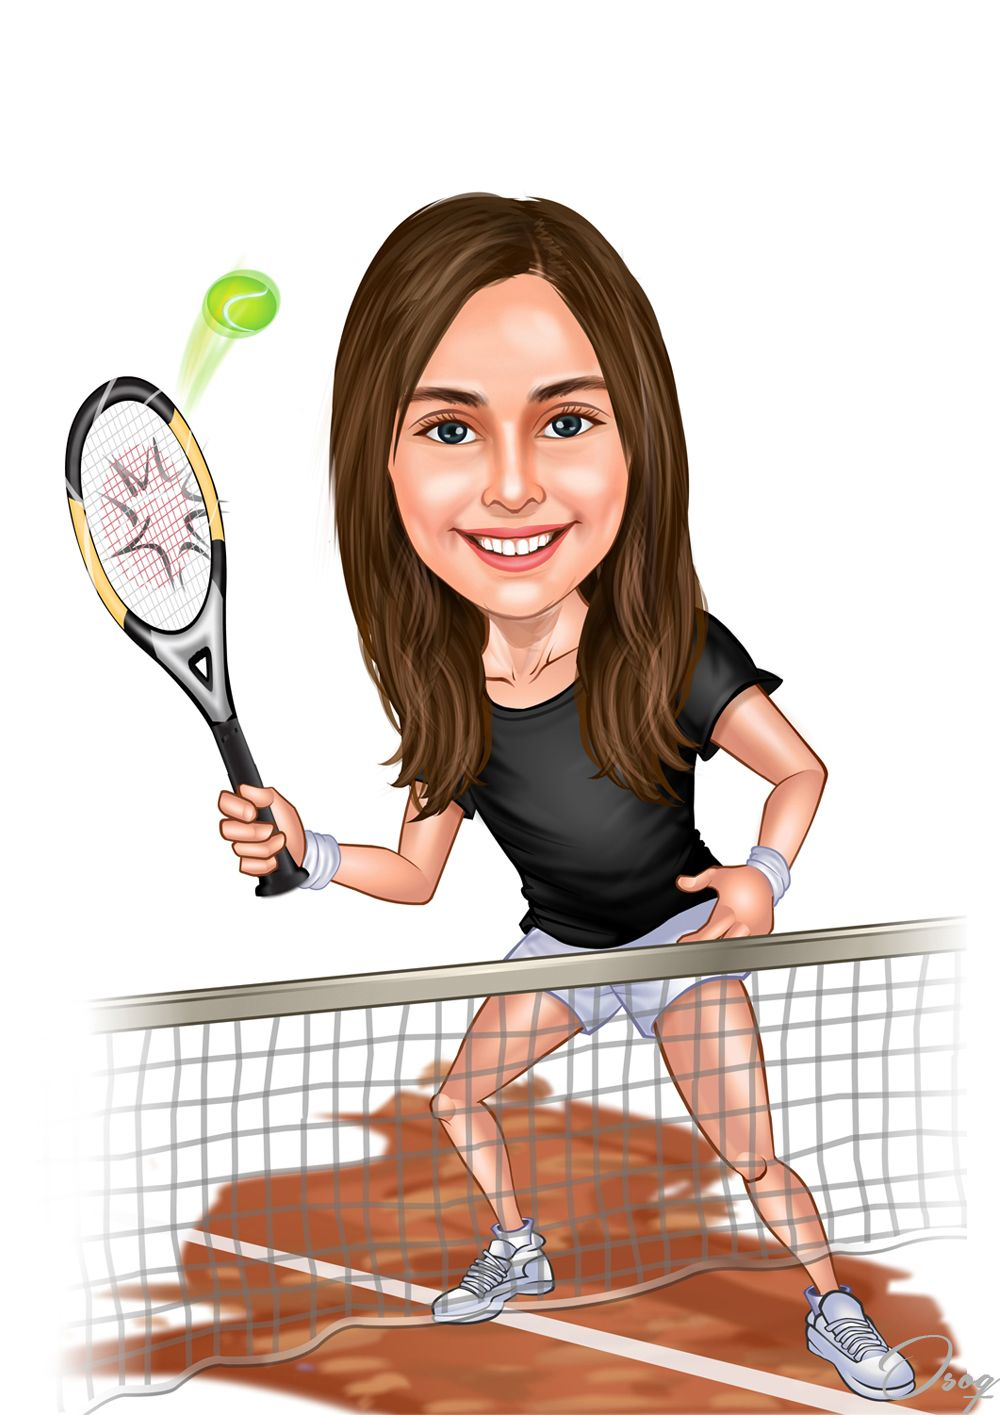 Girl Tennis Cartoon Character Girl Cartoon Characters Girl Cartoon Cartoon